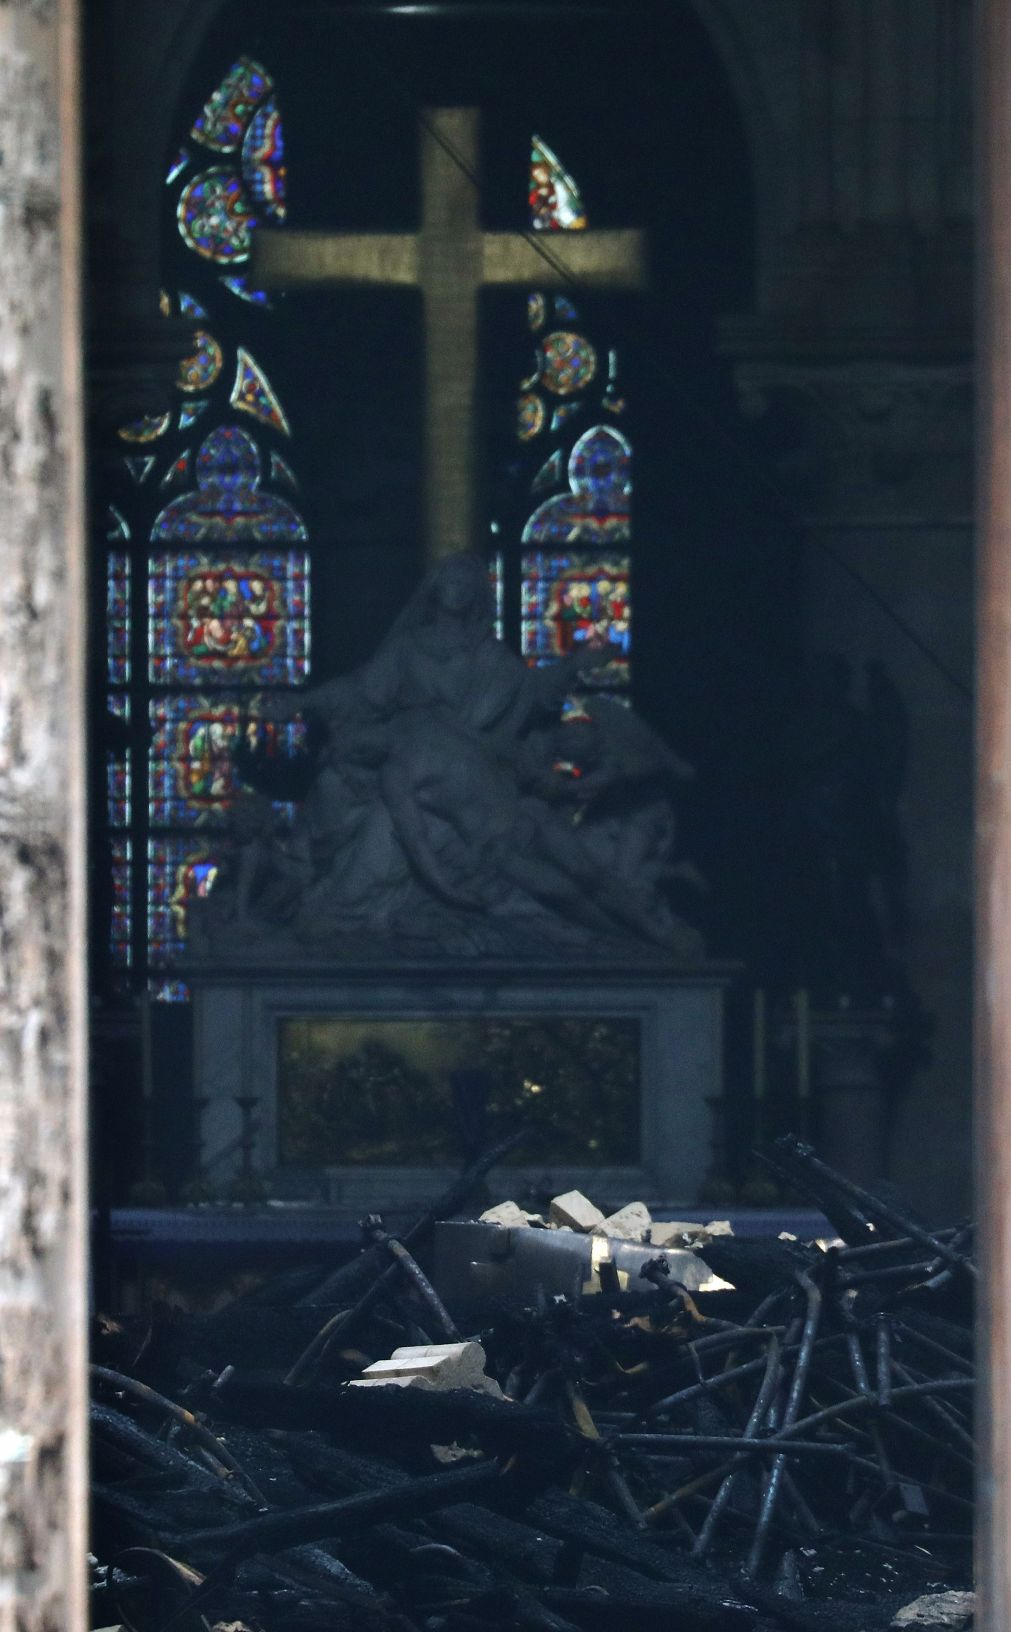 The open door of the cathedral reveals the damage inside